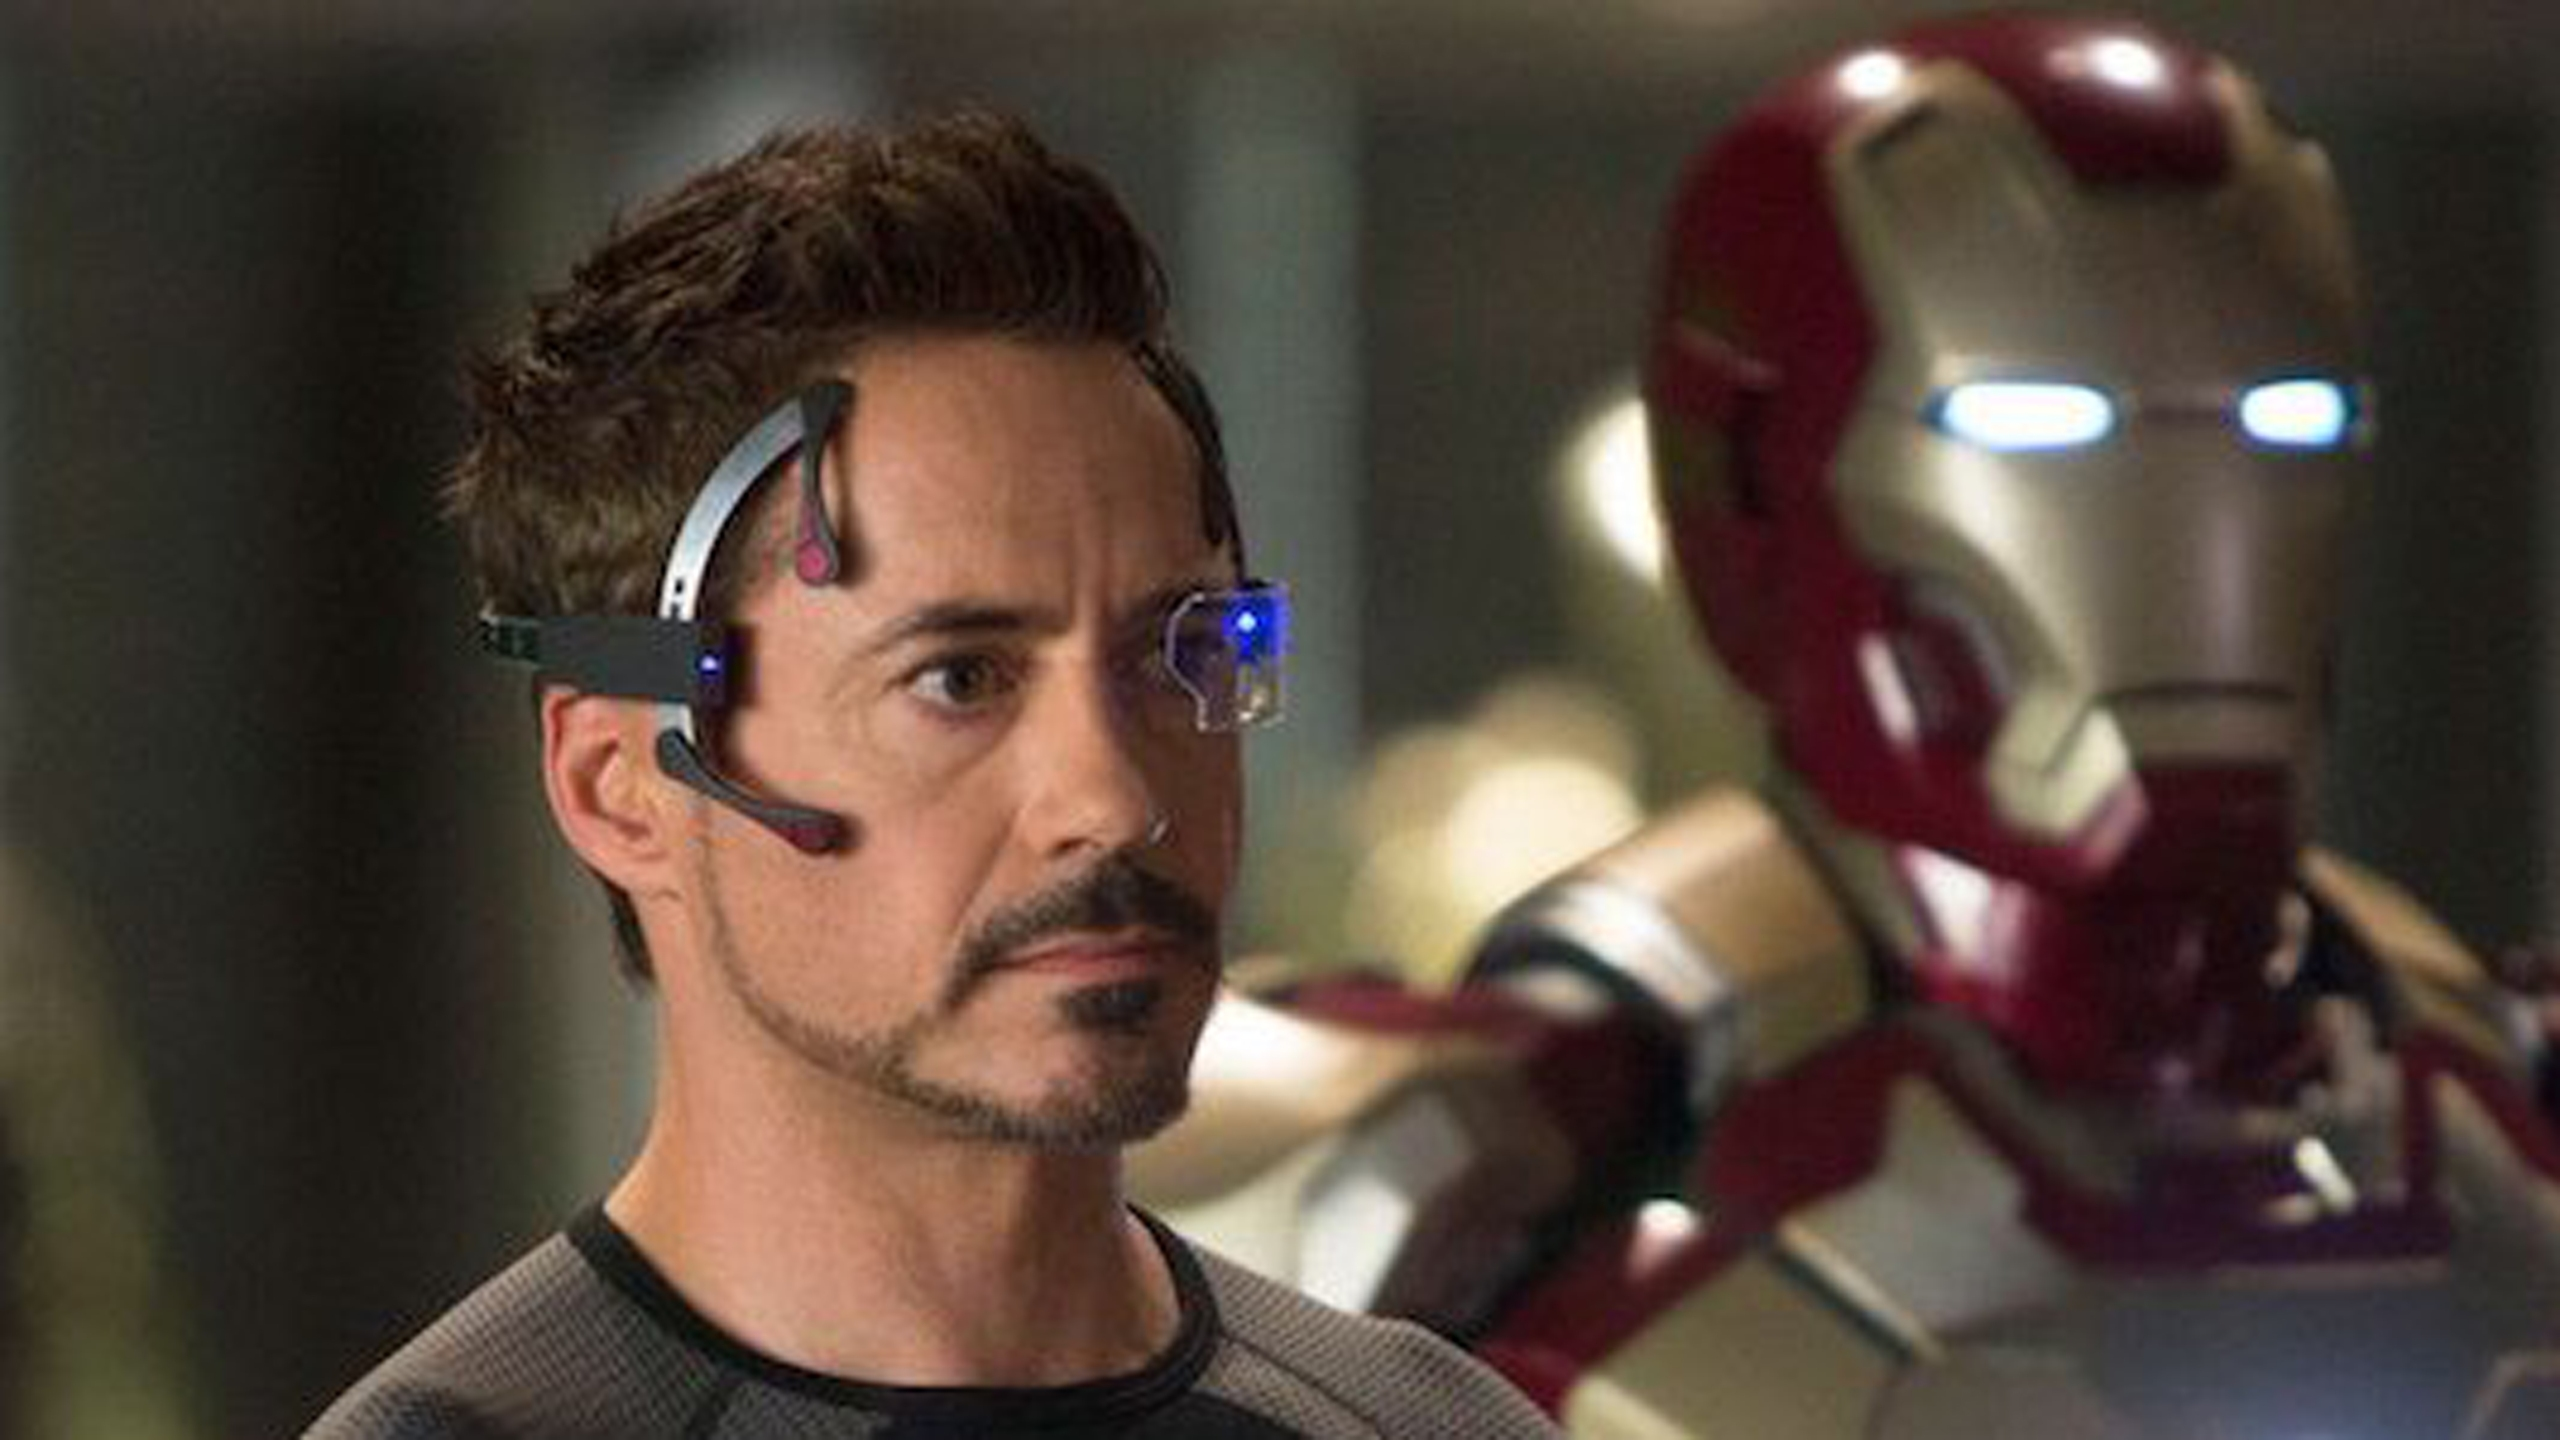 iron-man-3-revisited-1-700x301_1555810892710.jpg